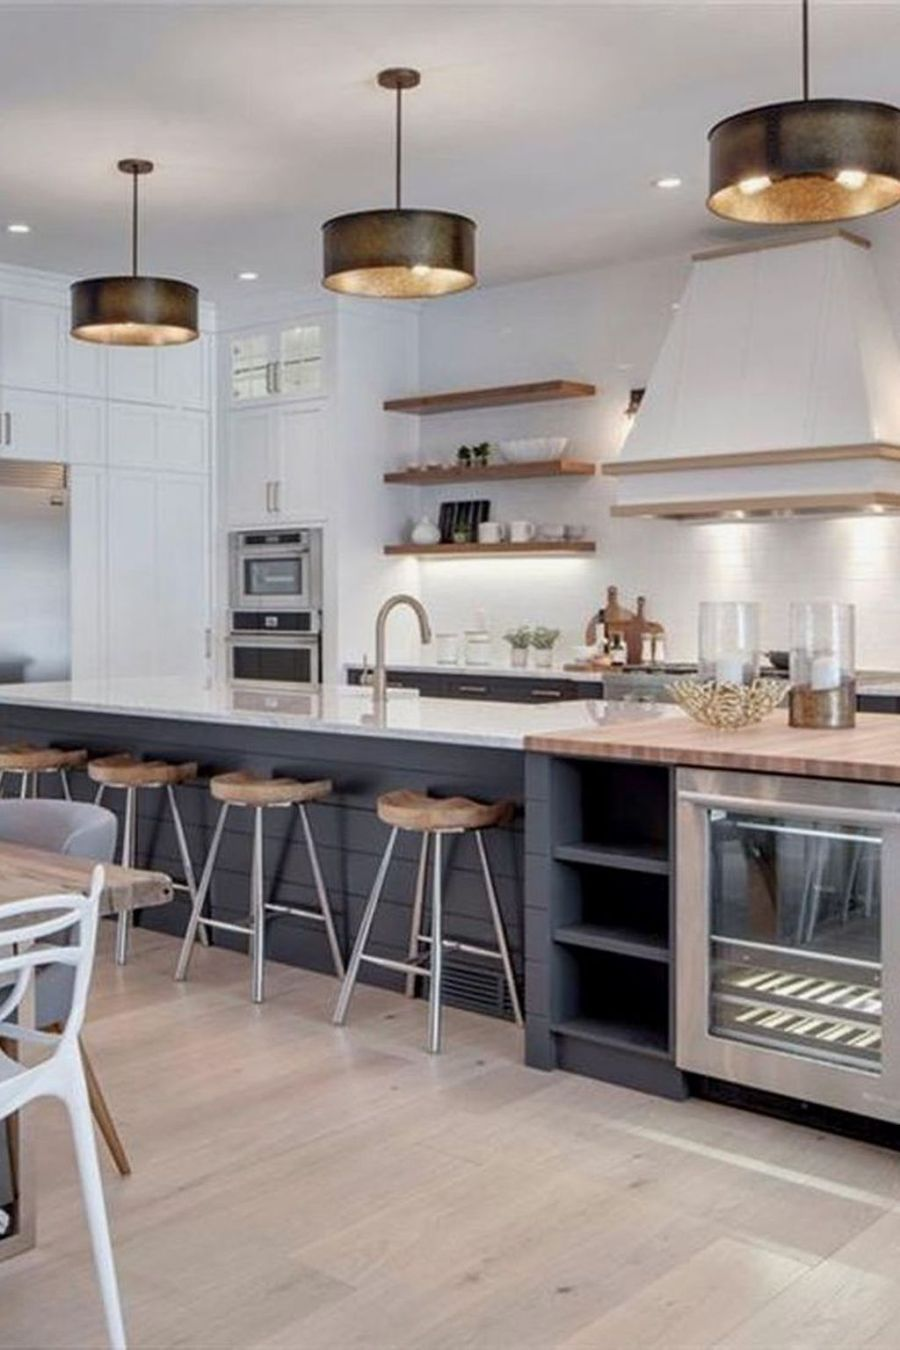 39 Best Ideas For Modern Kitchen Design That Will Inspire You Belihouse Com In 2020 Modern Farmhouse Kitchens Modern Kitchen Design Luxury Kitchen Design